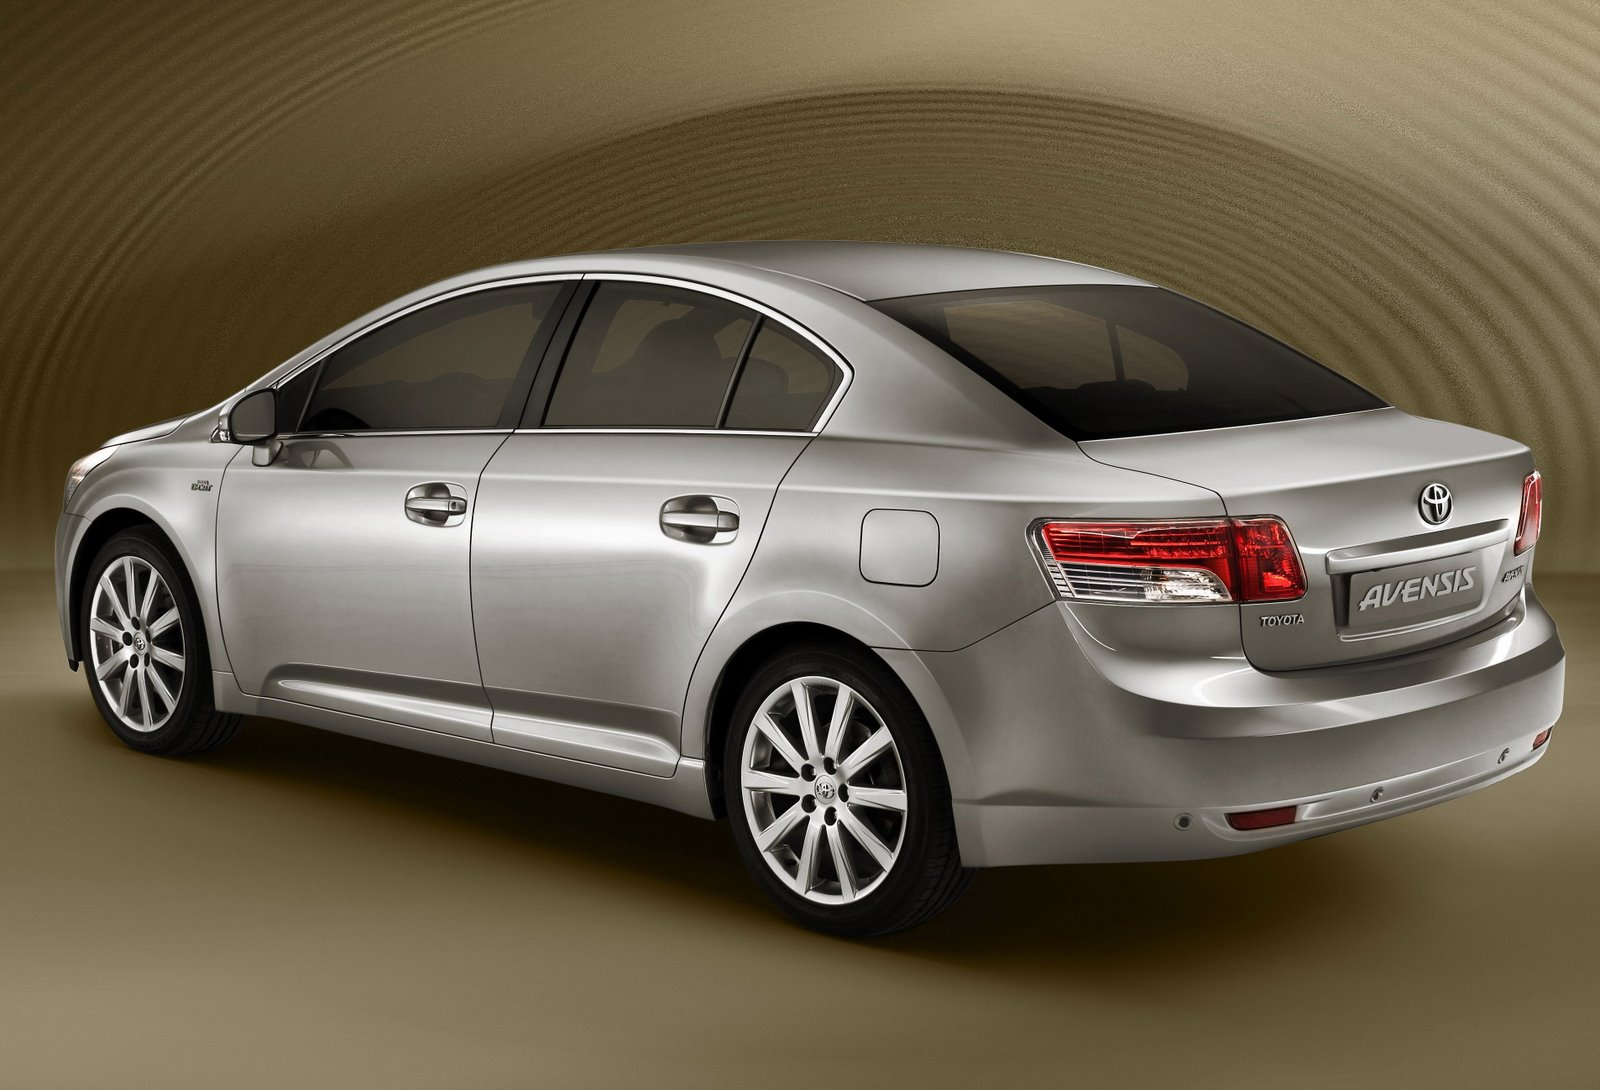 Images of New 2009 Toyota Avensis » toyota-avensis-2009-img_1